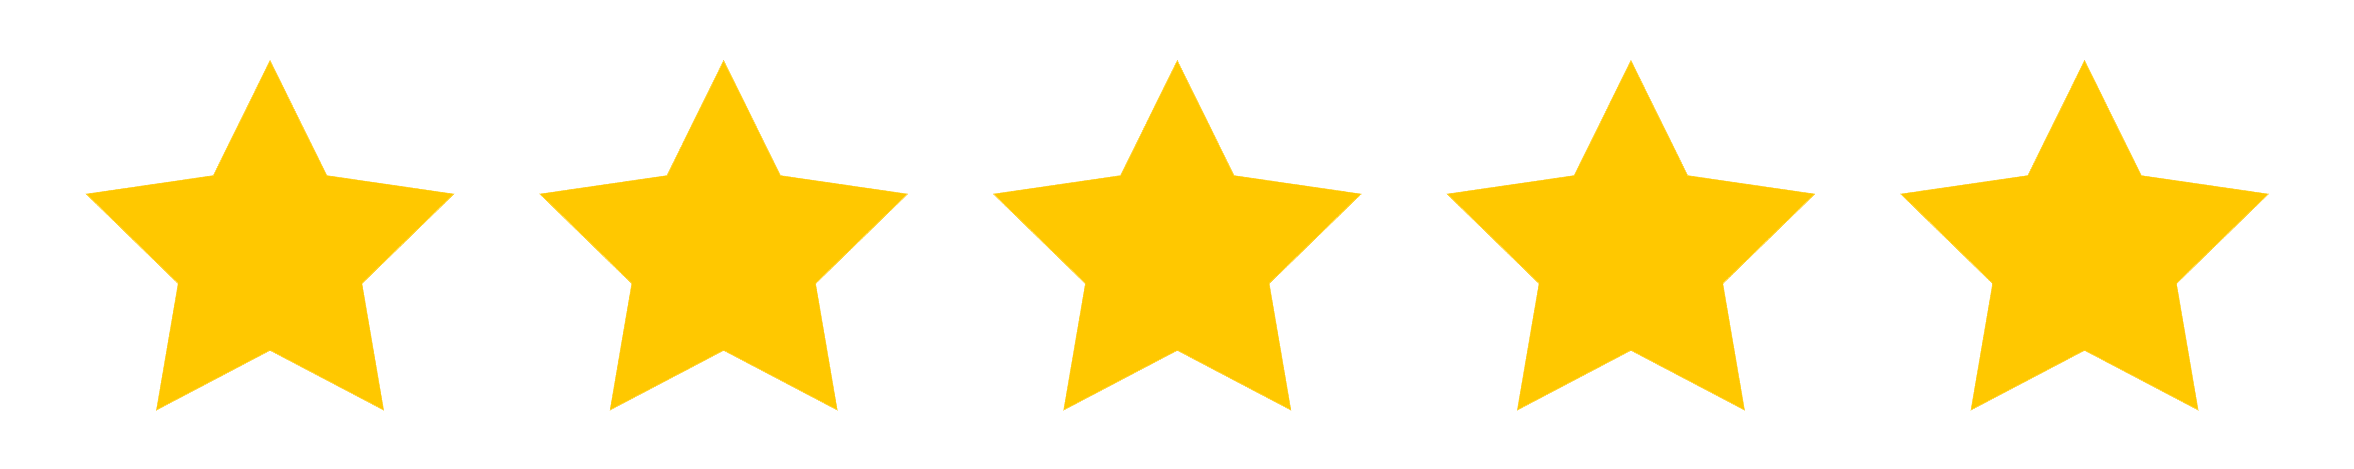 Reviews star rating from Diane C. for A-1 Self Storage in La Habra, California